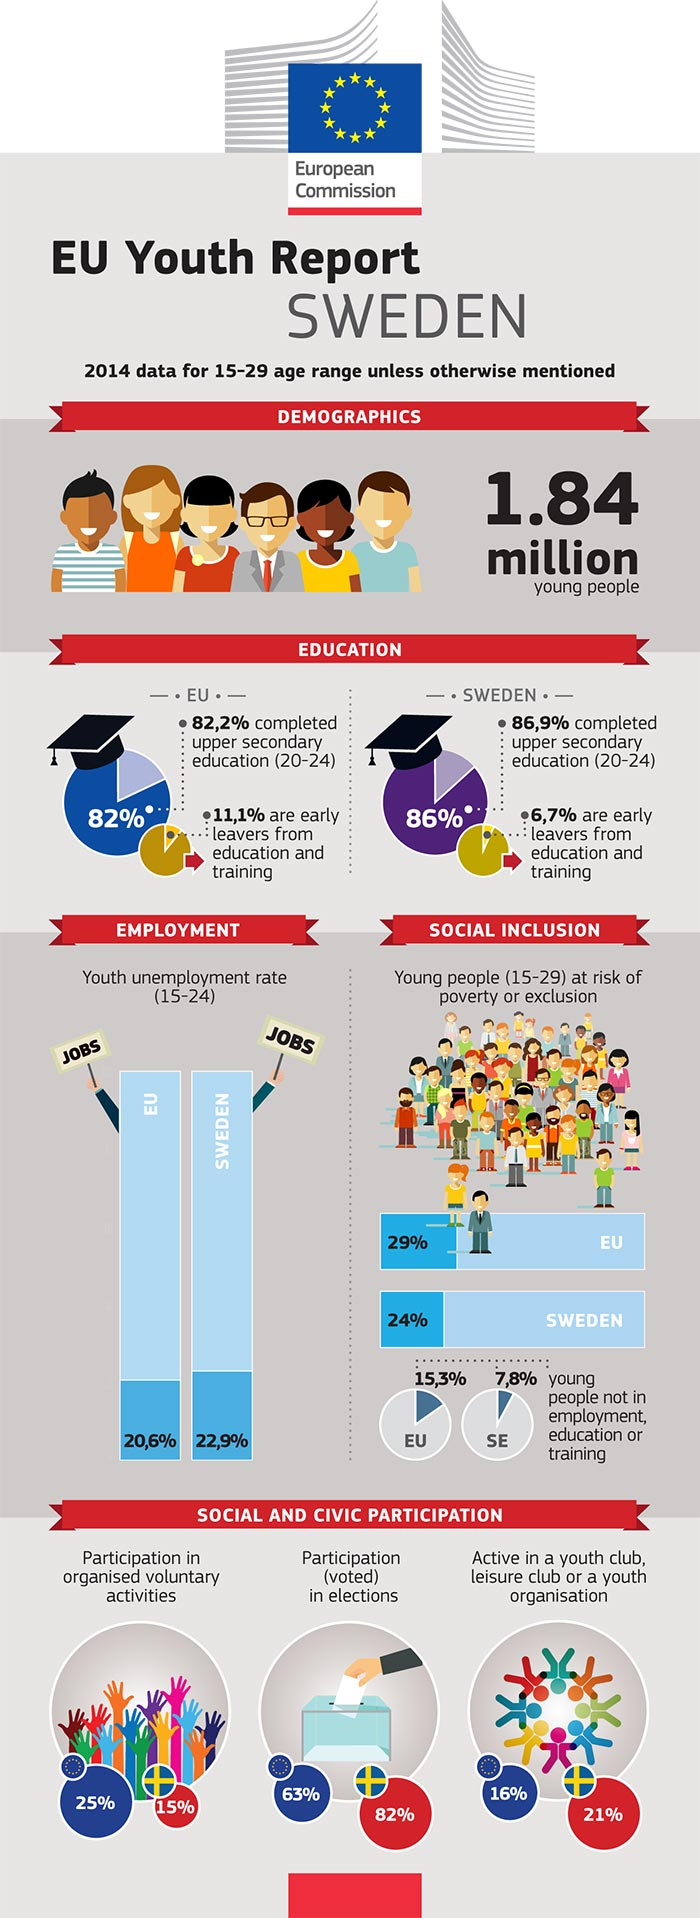 EU Youth Report infographic: Sweden